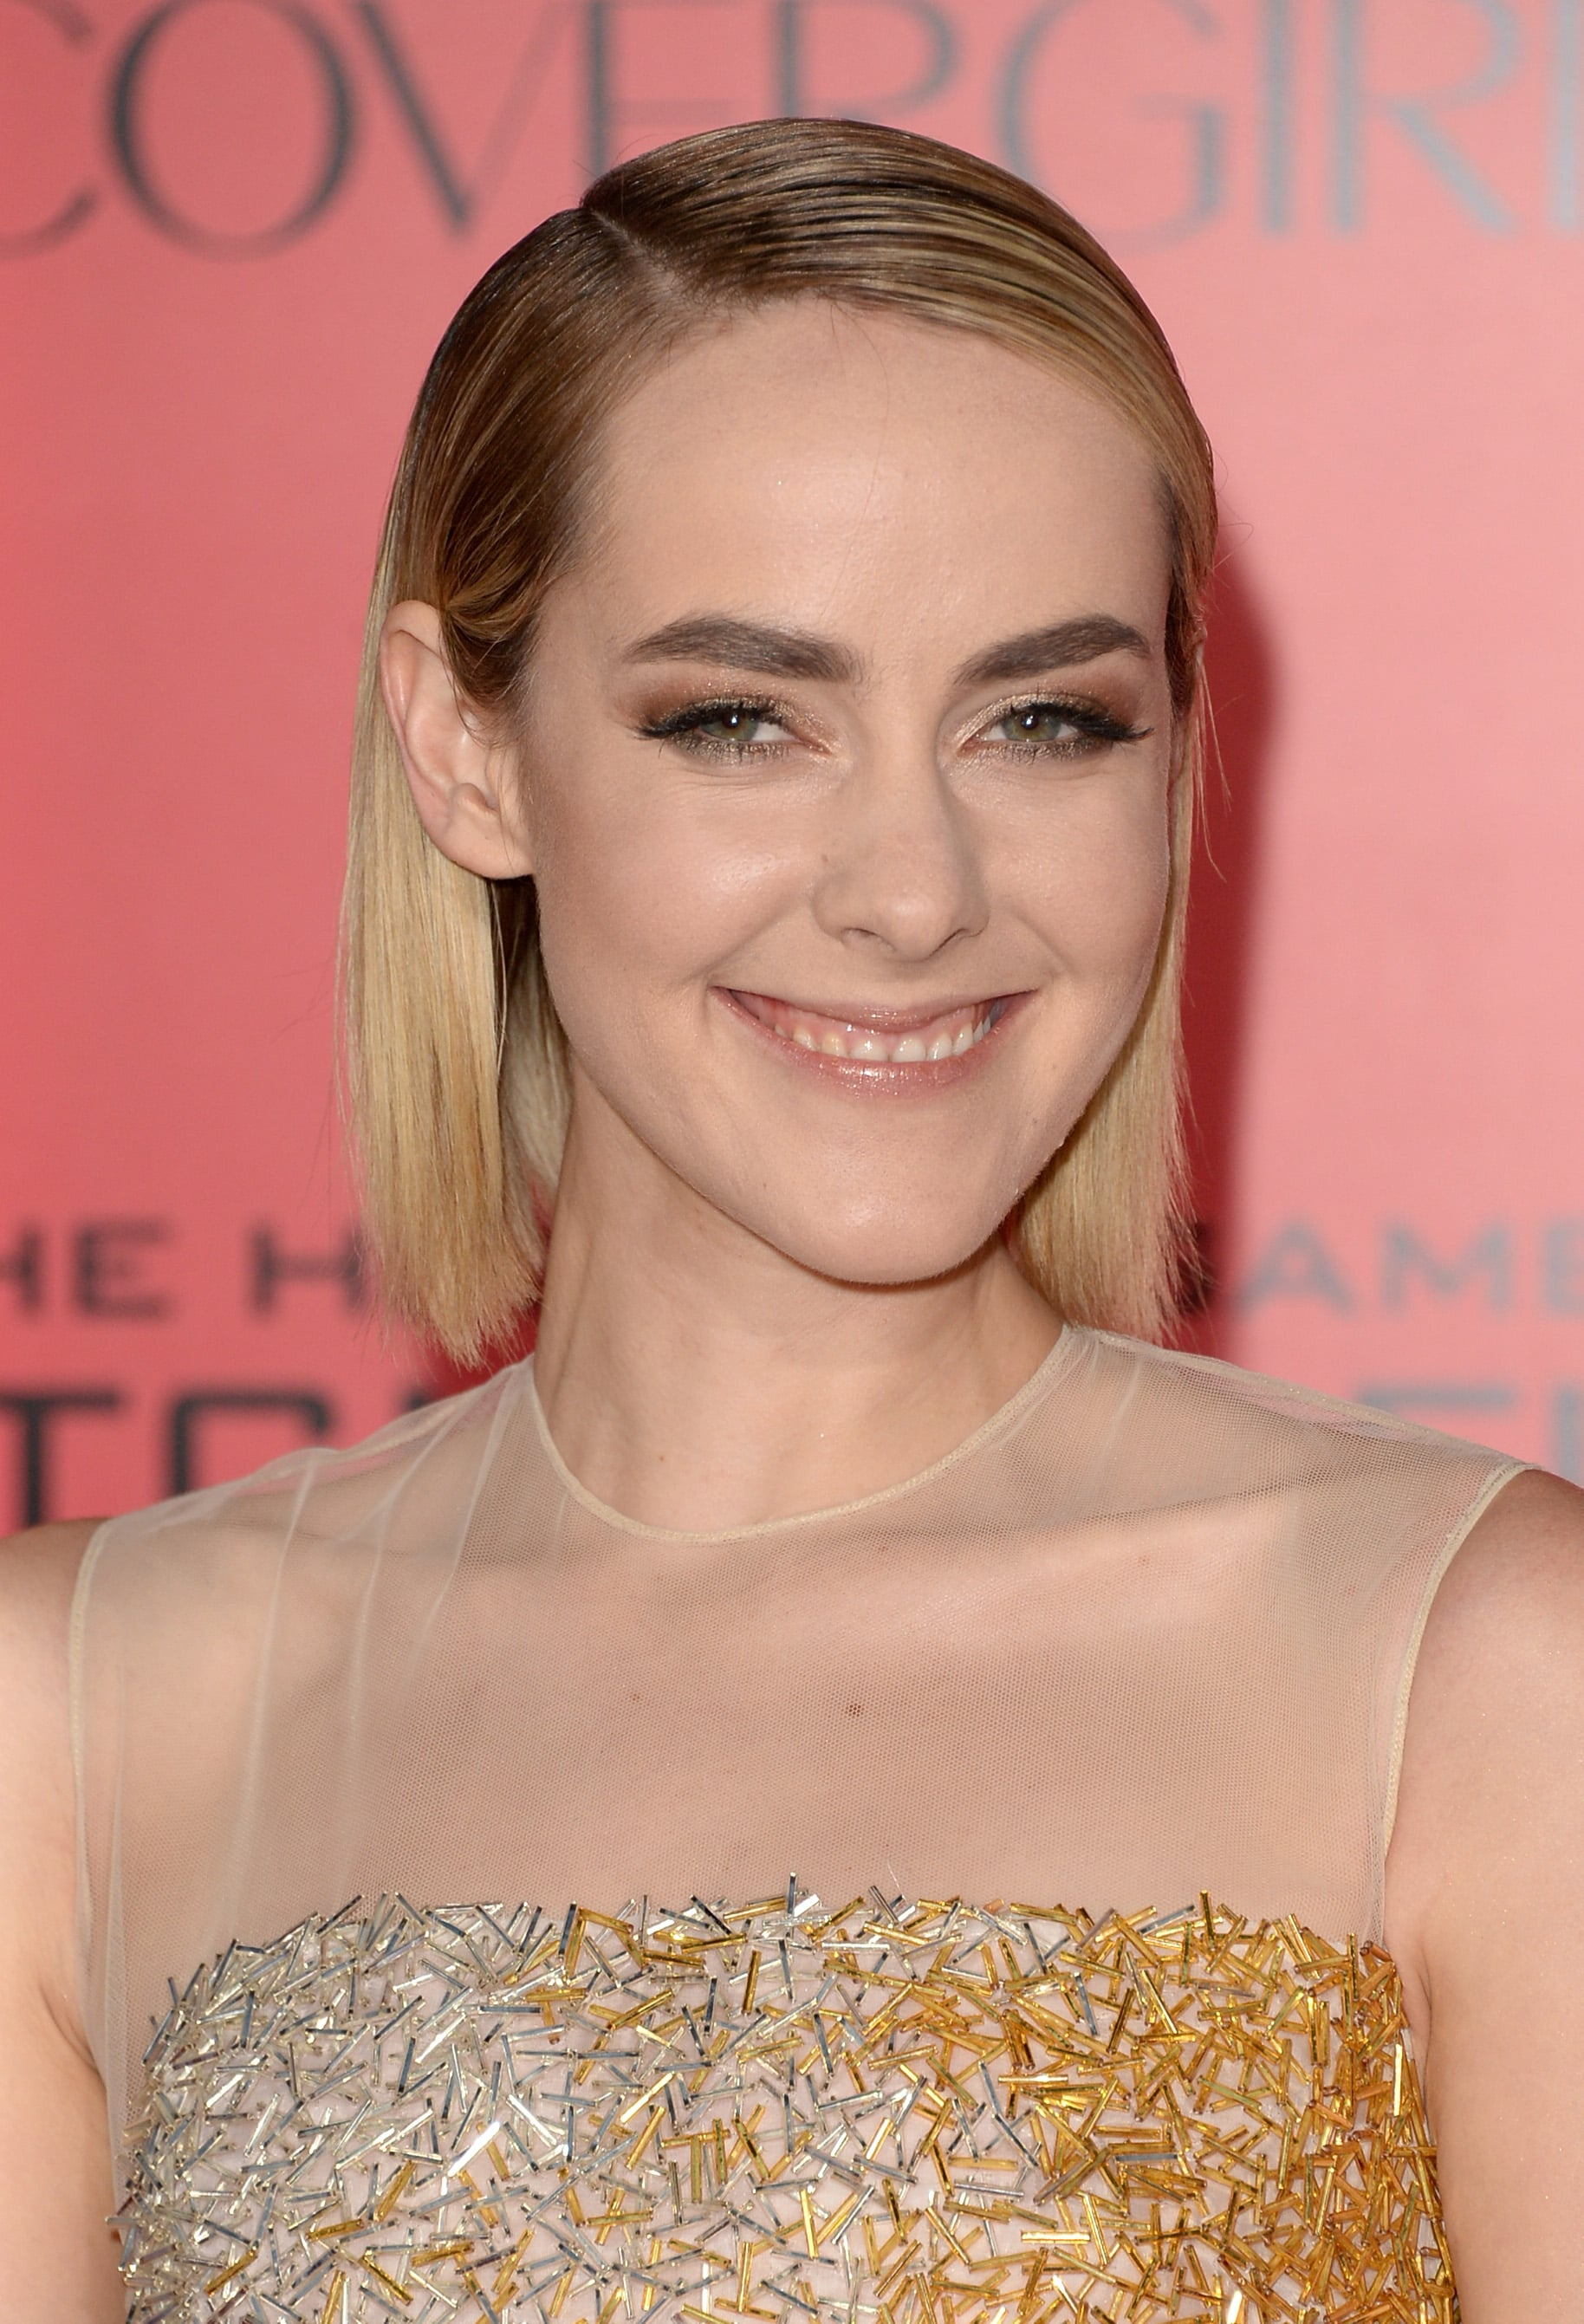 Jena Malone opted for a two-textured hairstyle with wet roots and straight dry ends. As for makeup, her brows were the center of attention.